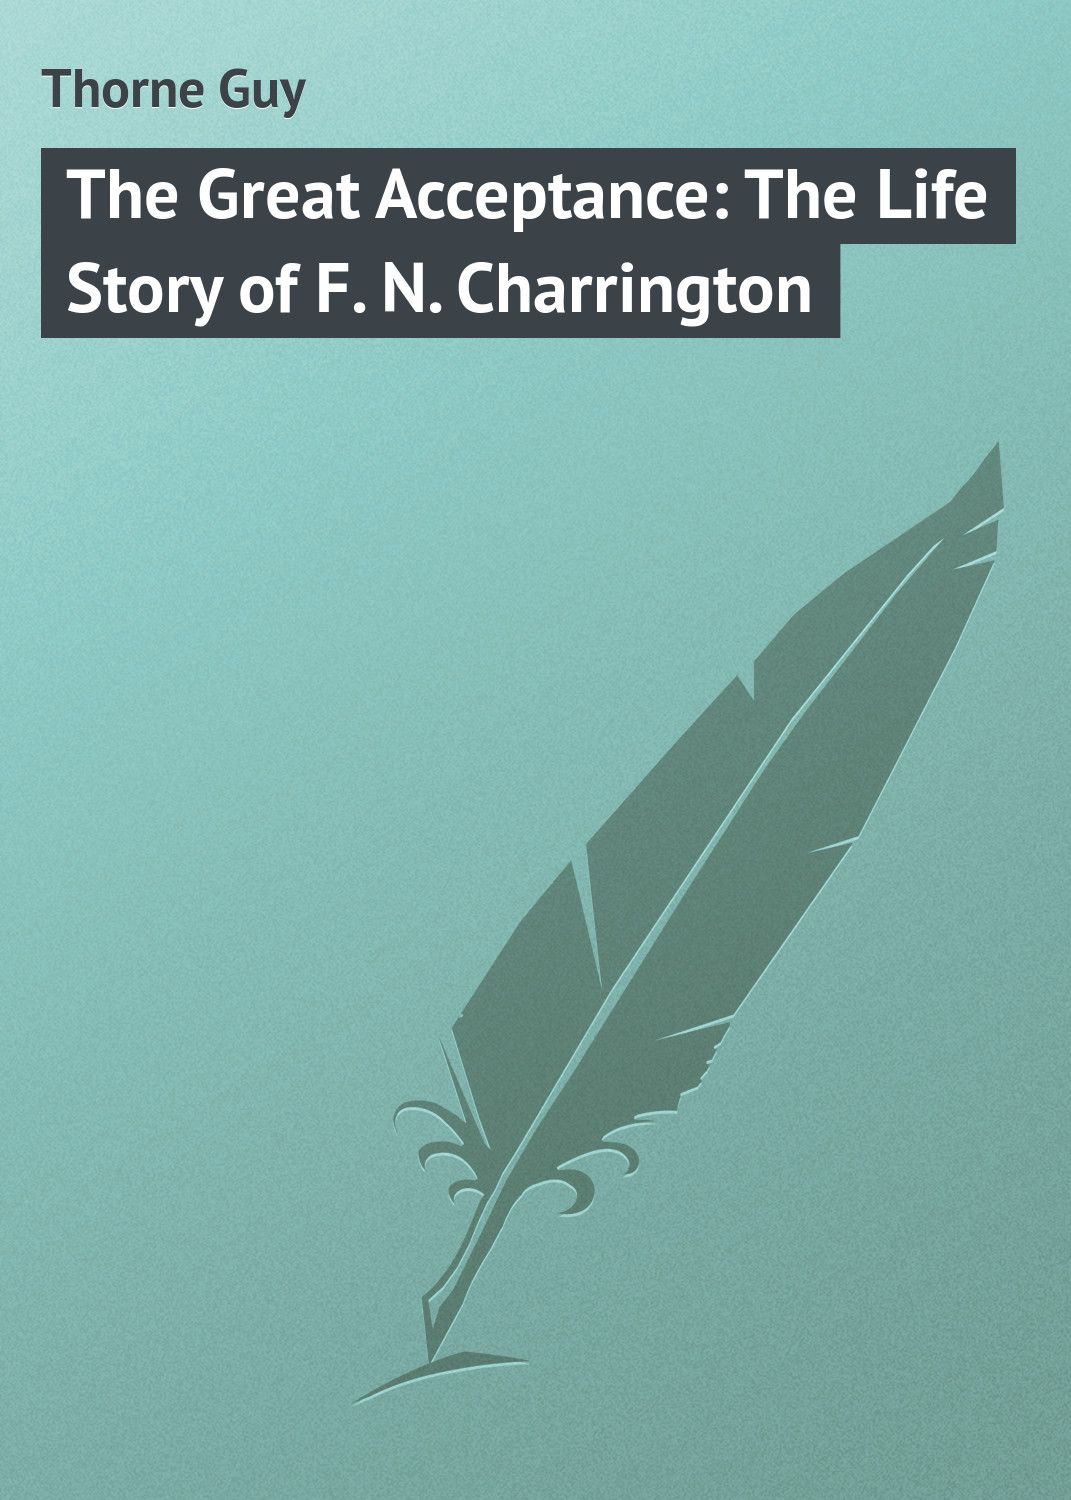 The Great Acceptance: The Life Story of F. N. Charrington